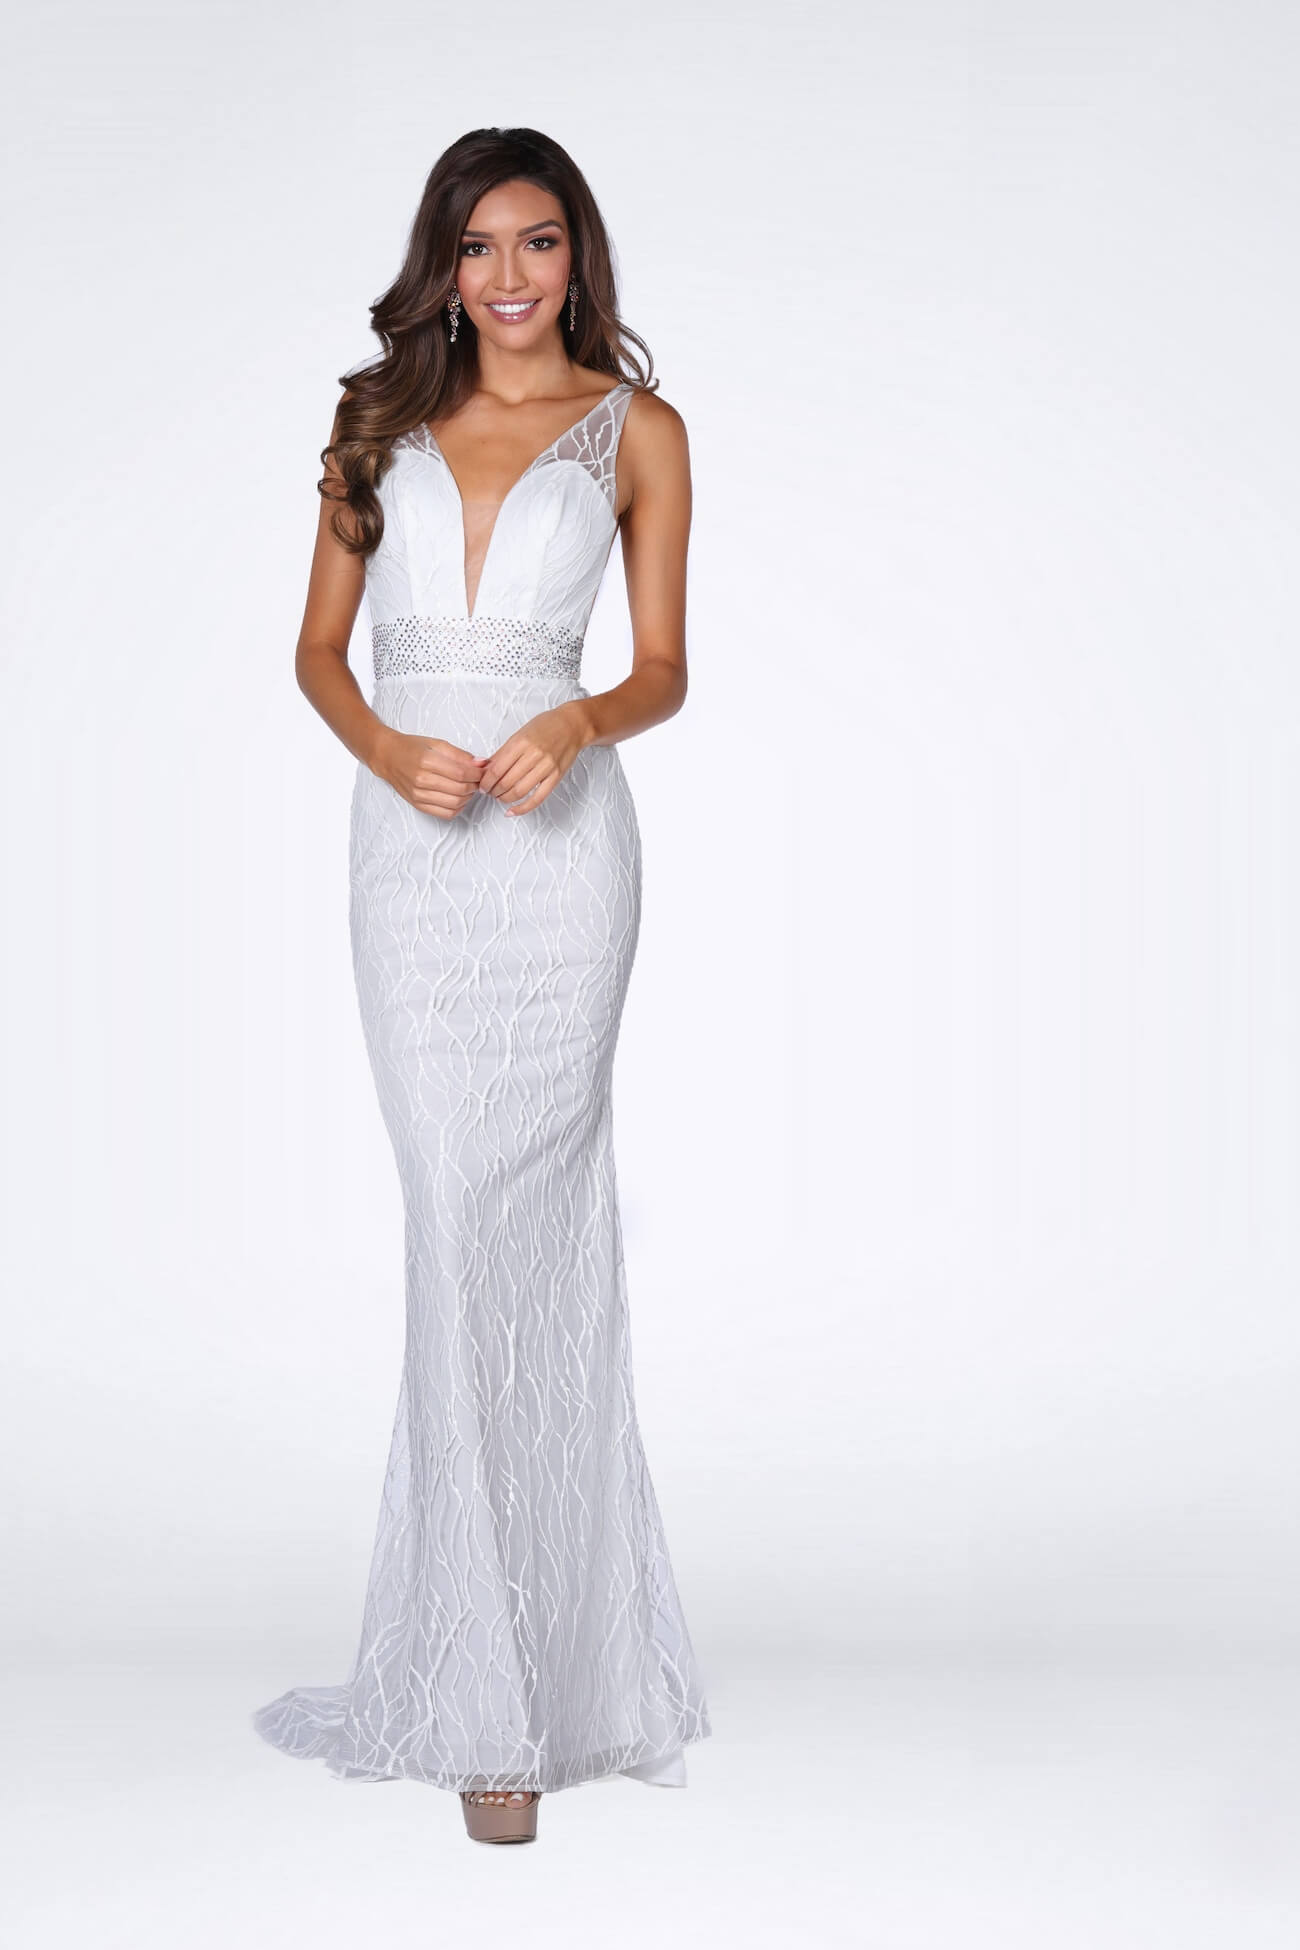 Vienna White Size 2 Plunge Lace Mermaid Dress on Queenly